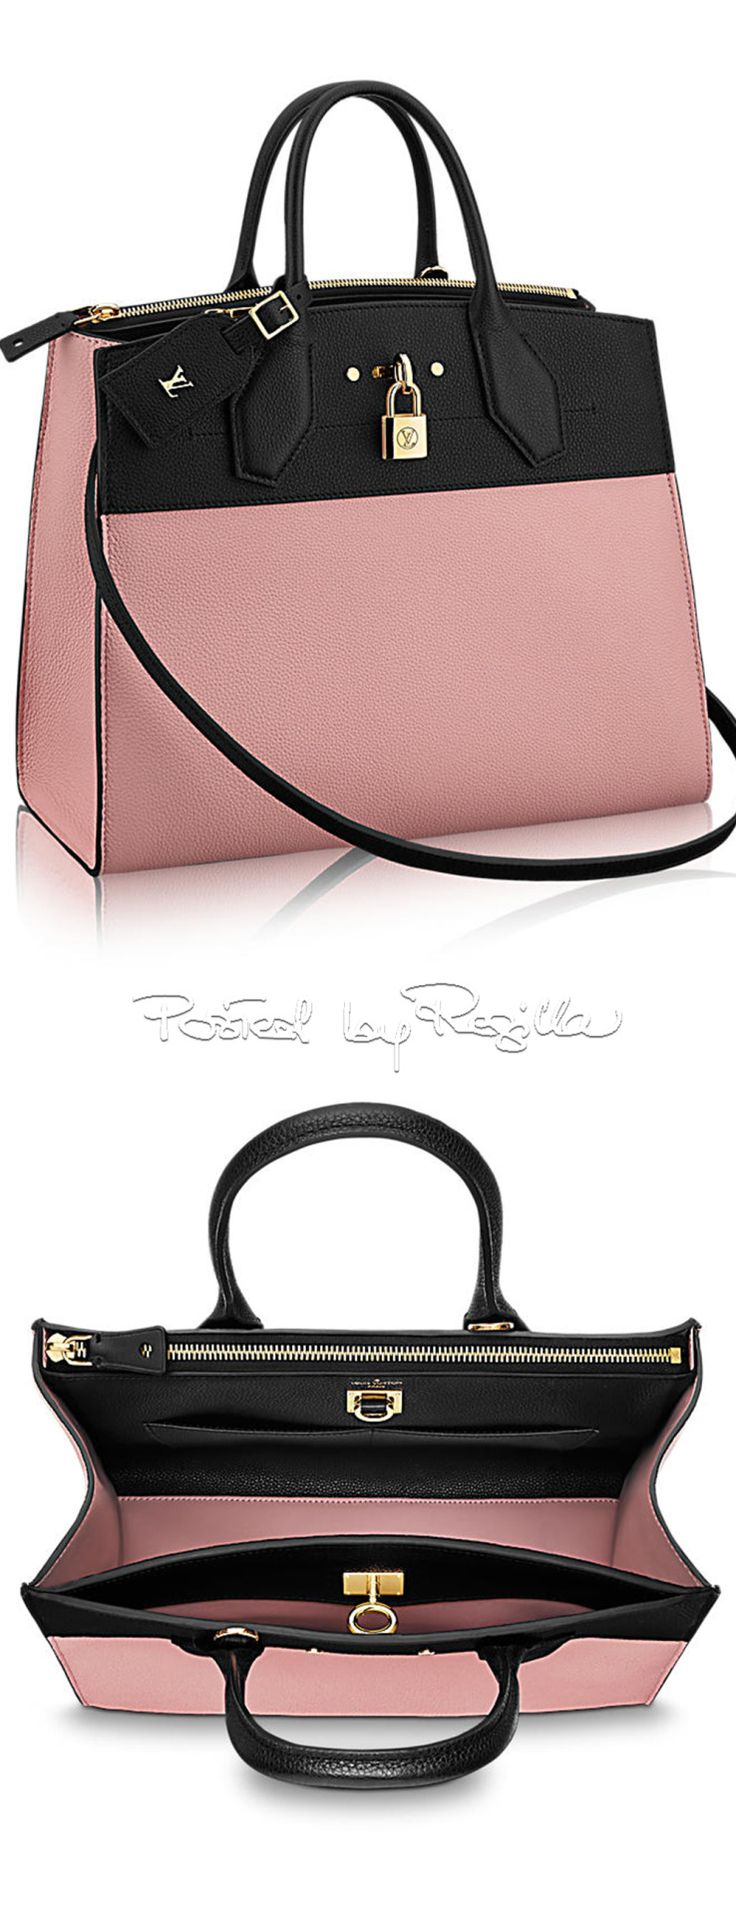 Regilla ⚜ Louis Vuitton